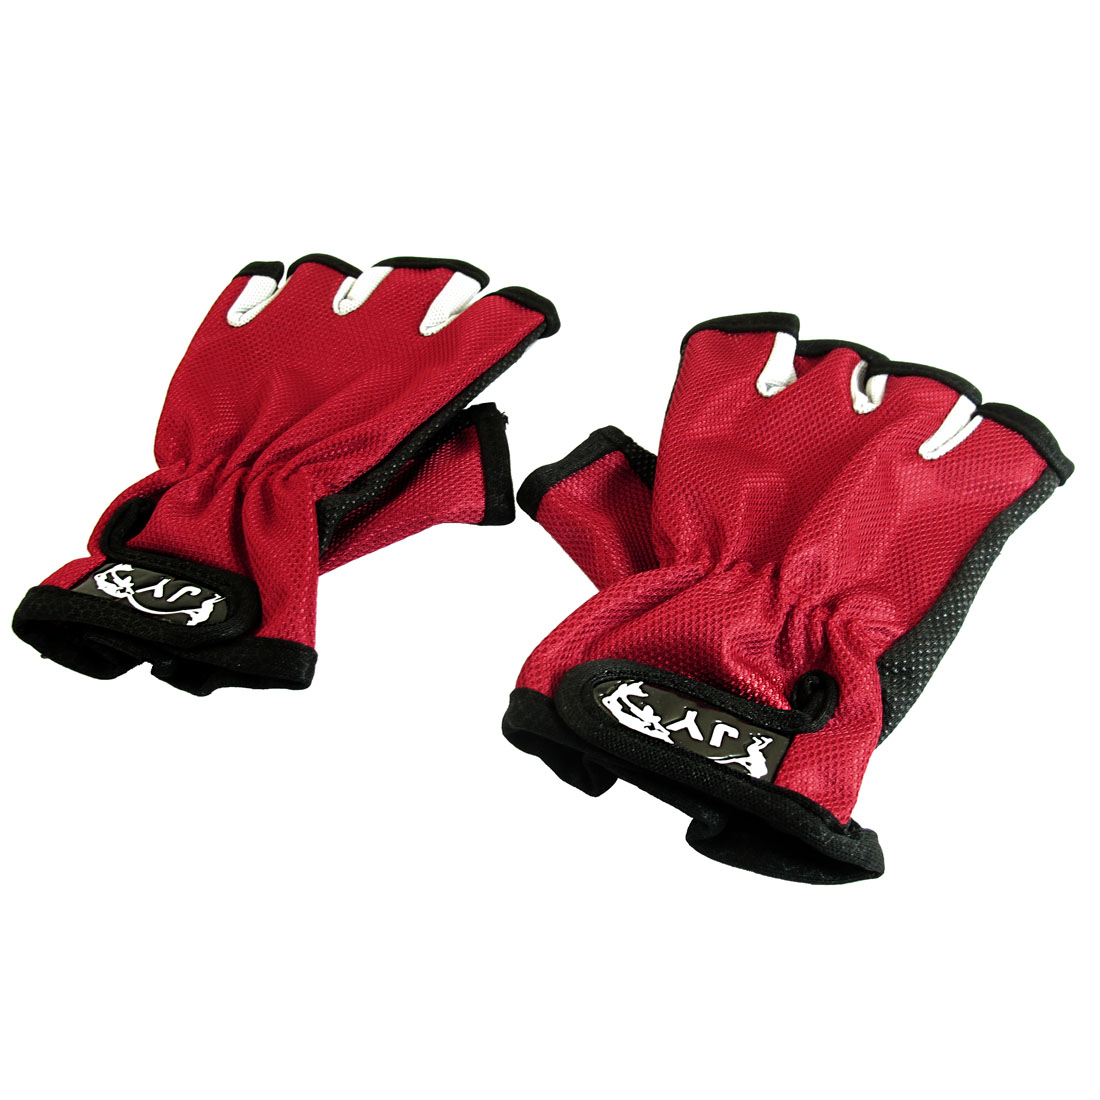 Pair Hook Loop Fasten 5 Half Finger Nonslip Dotted Palm Fishing Gloves Red Black